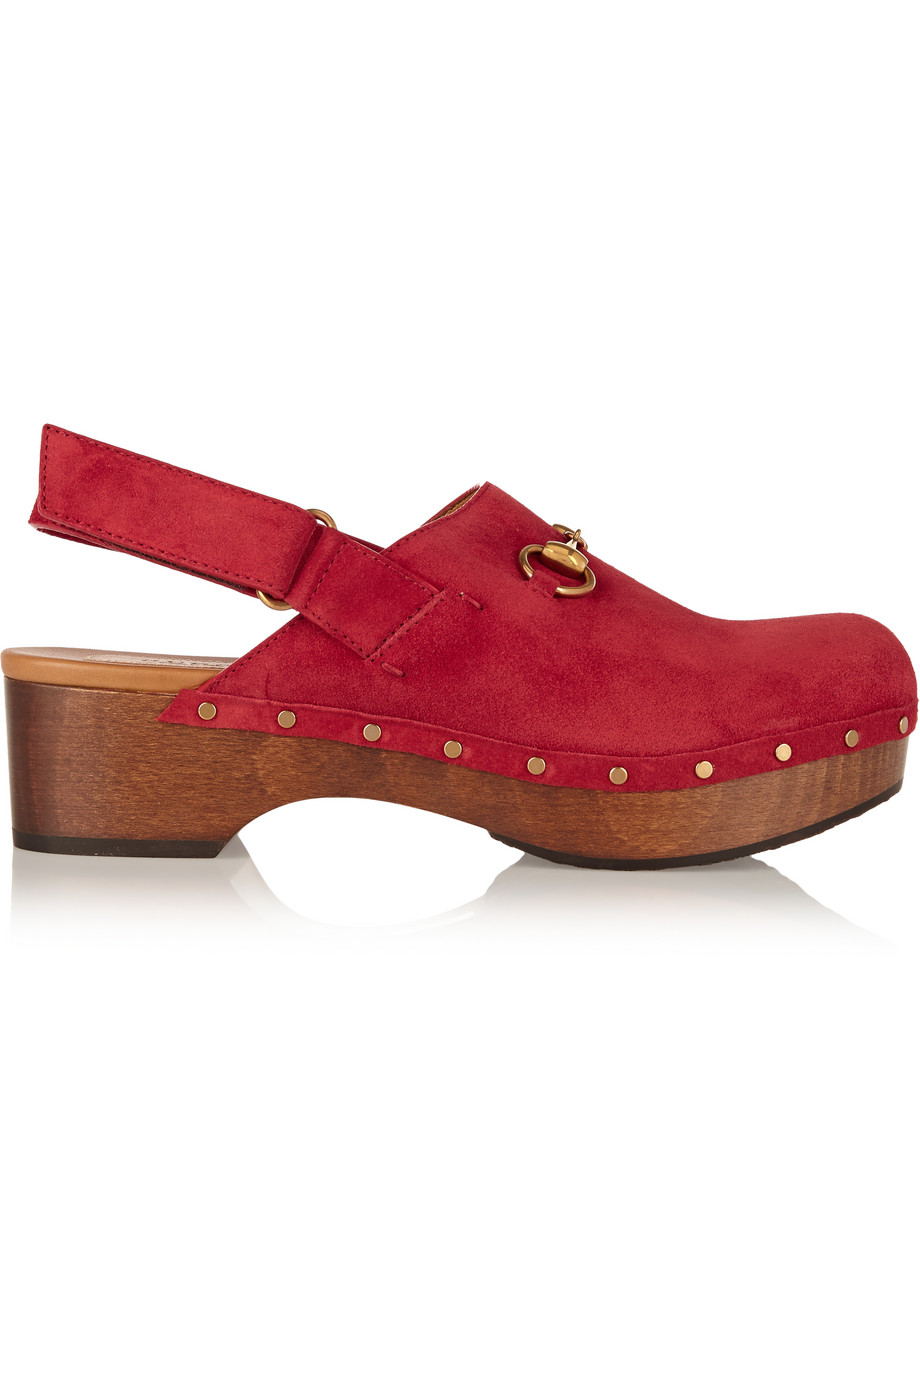 Gucci Horsebit-Detailed Suede Clogs, Red, Women's US Size: 4, Size: 34.5